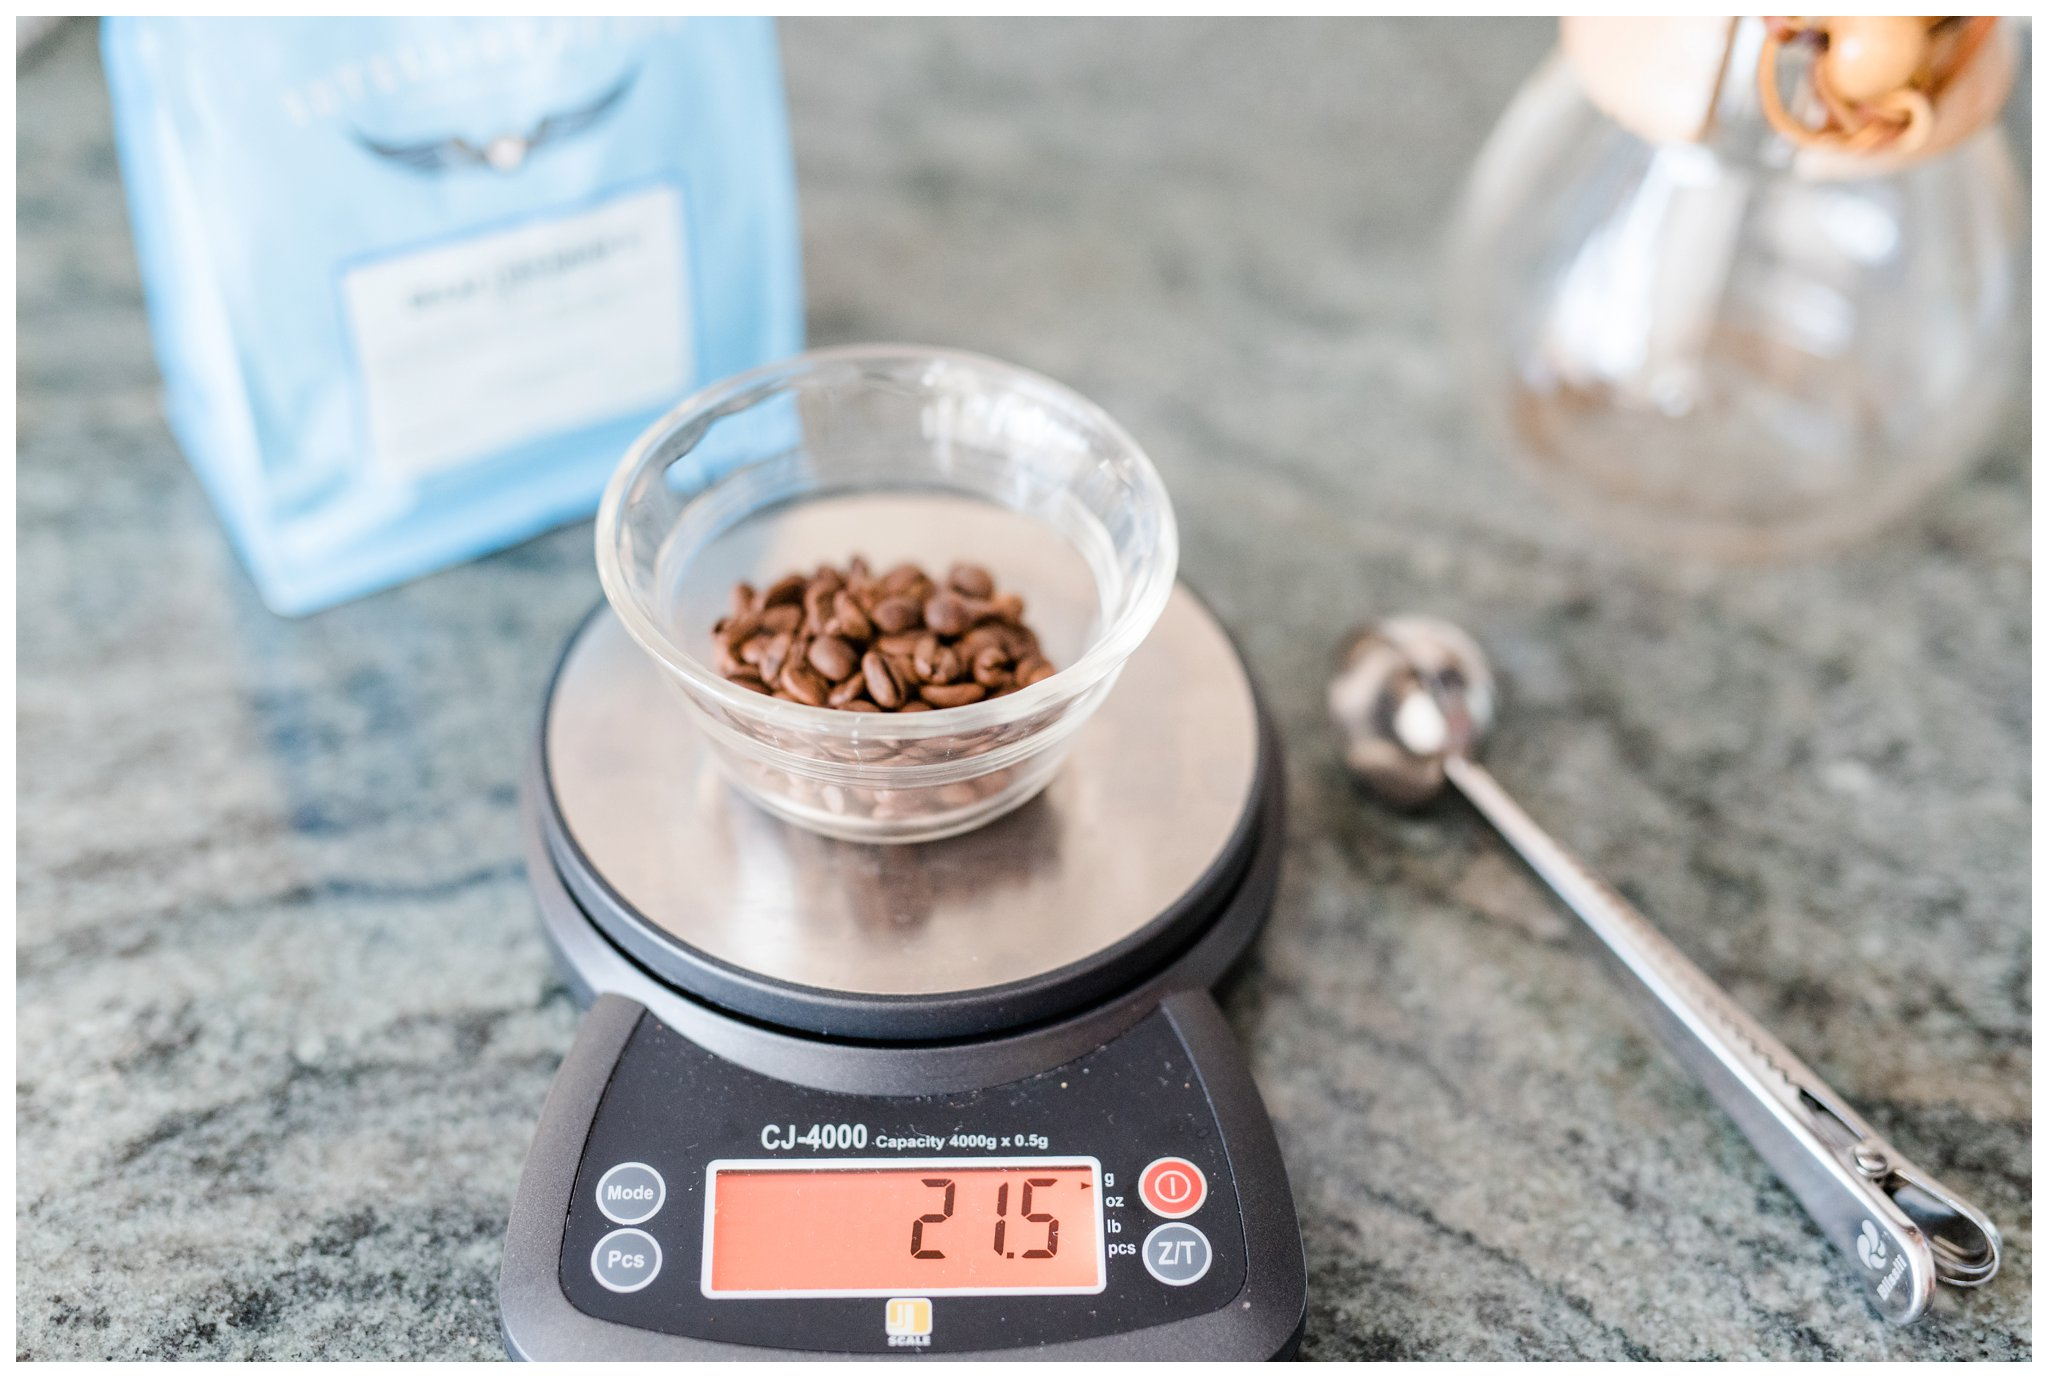 This is the scale that we use and we measure in grams. If you have any scale around the house that measures in grams it will be fine to use.